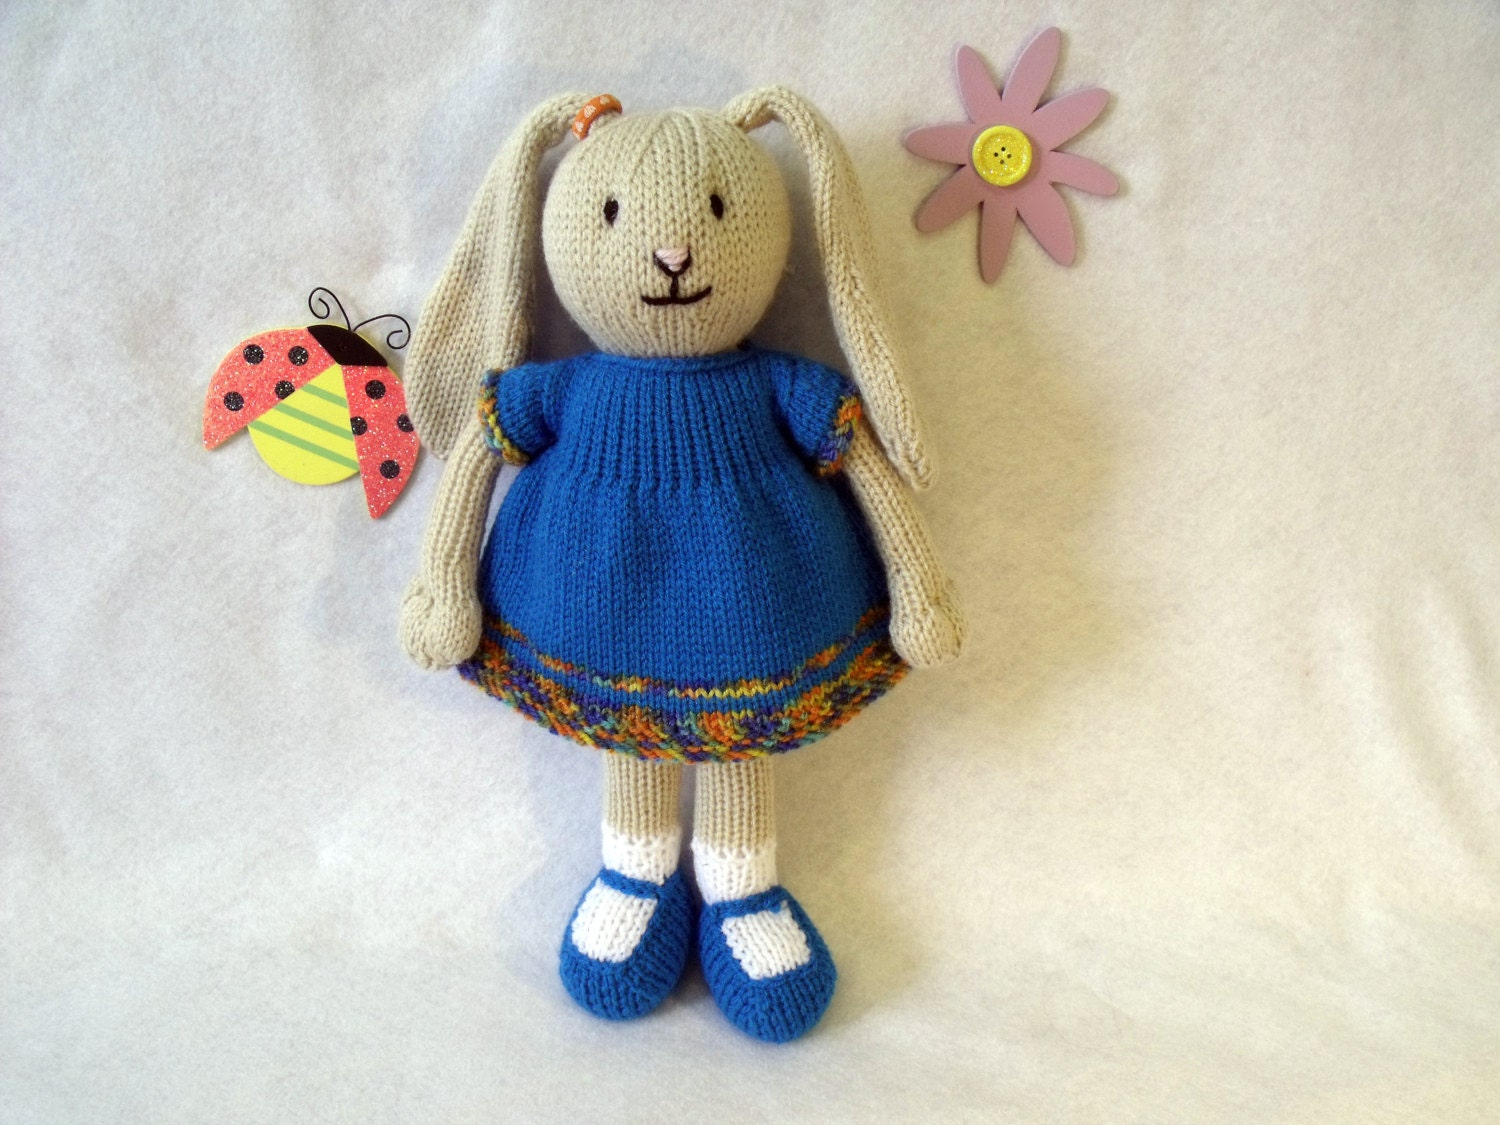 Toy doll bunny knitting pattern bina the bunny floppy eared zoom bankloansurffo Choice Image